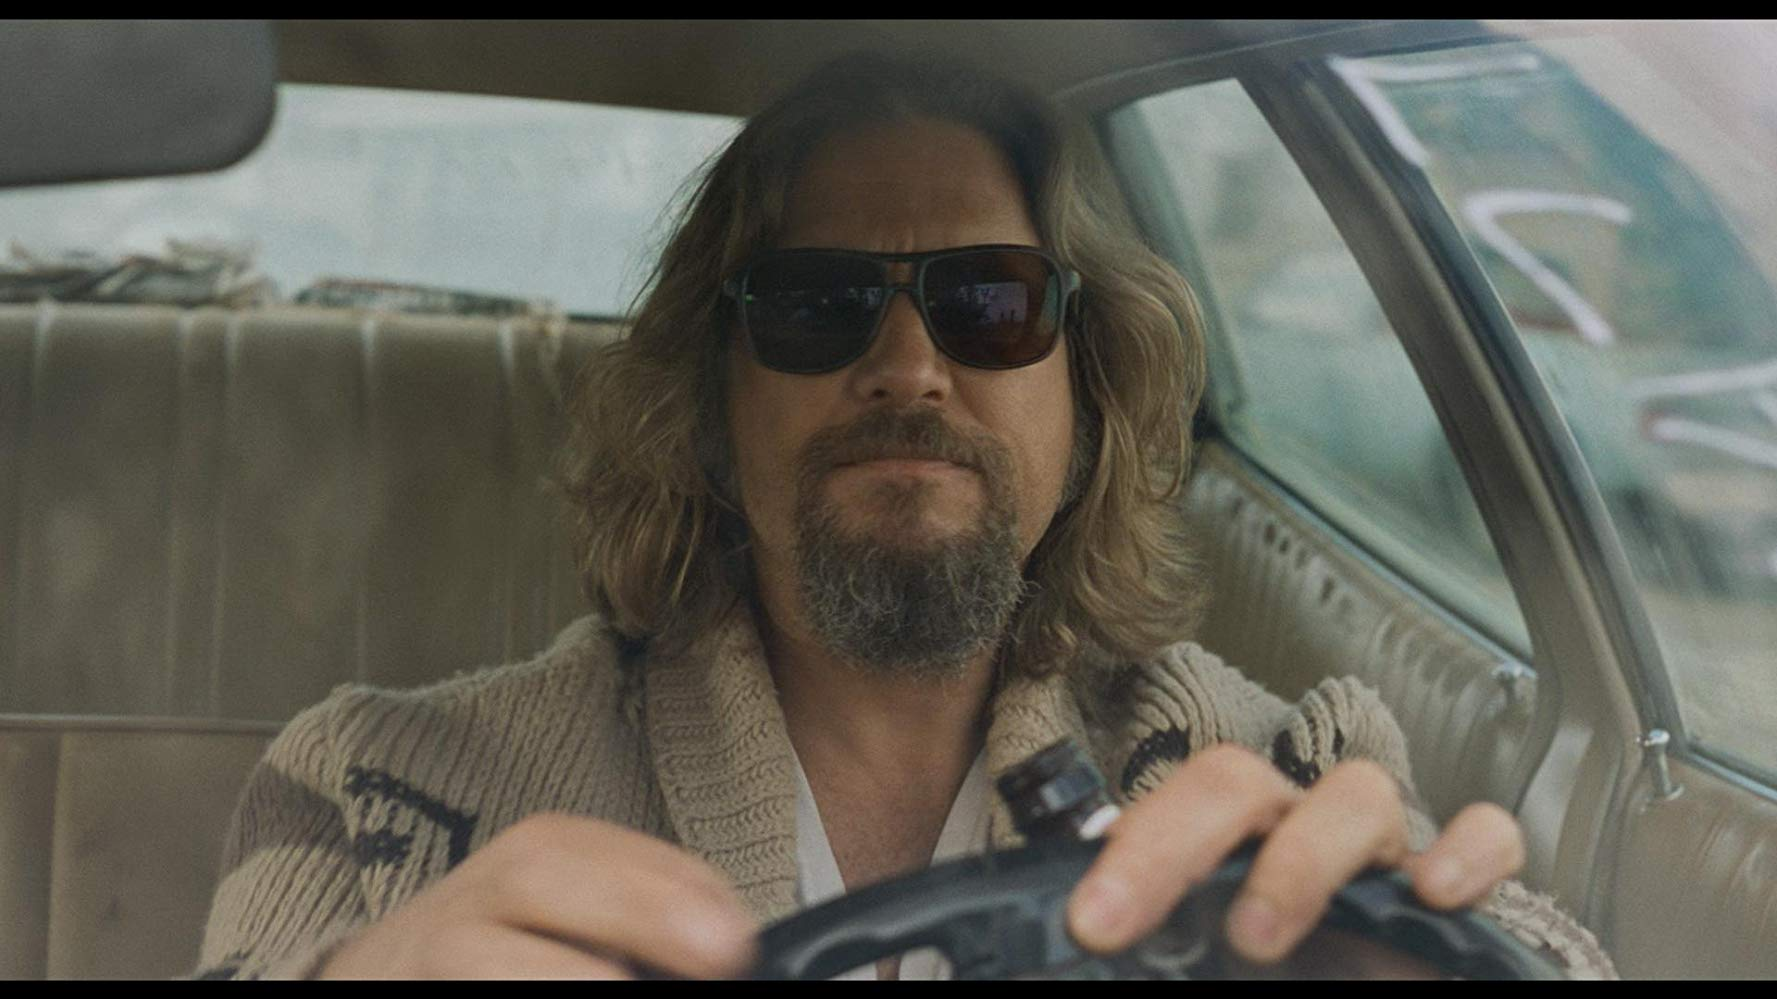 Long-haired man with beard driving with sunglasses on and a tan sweater.